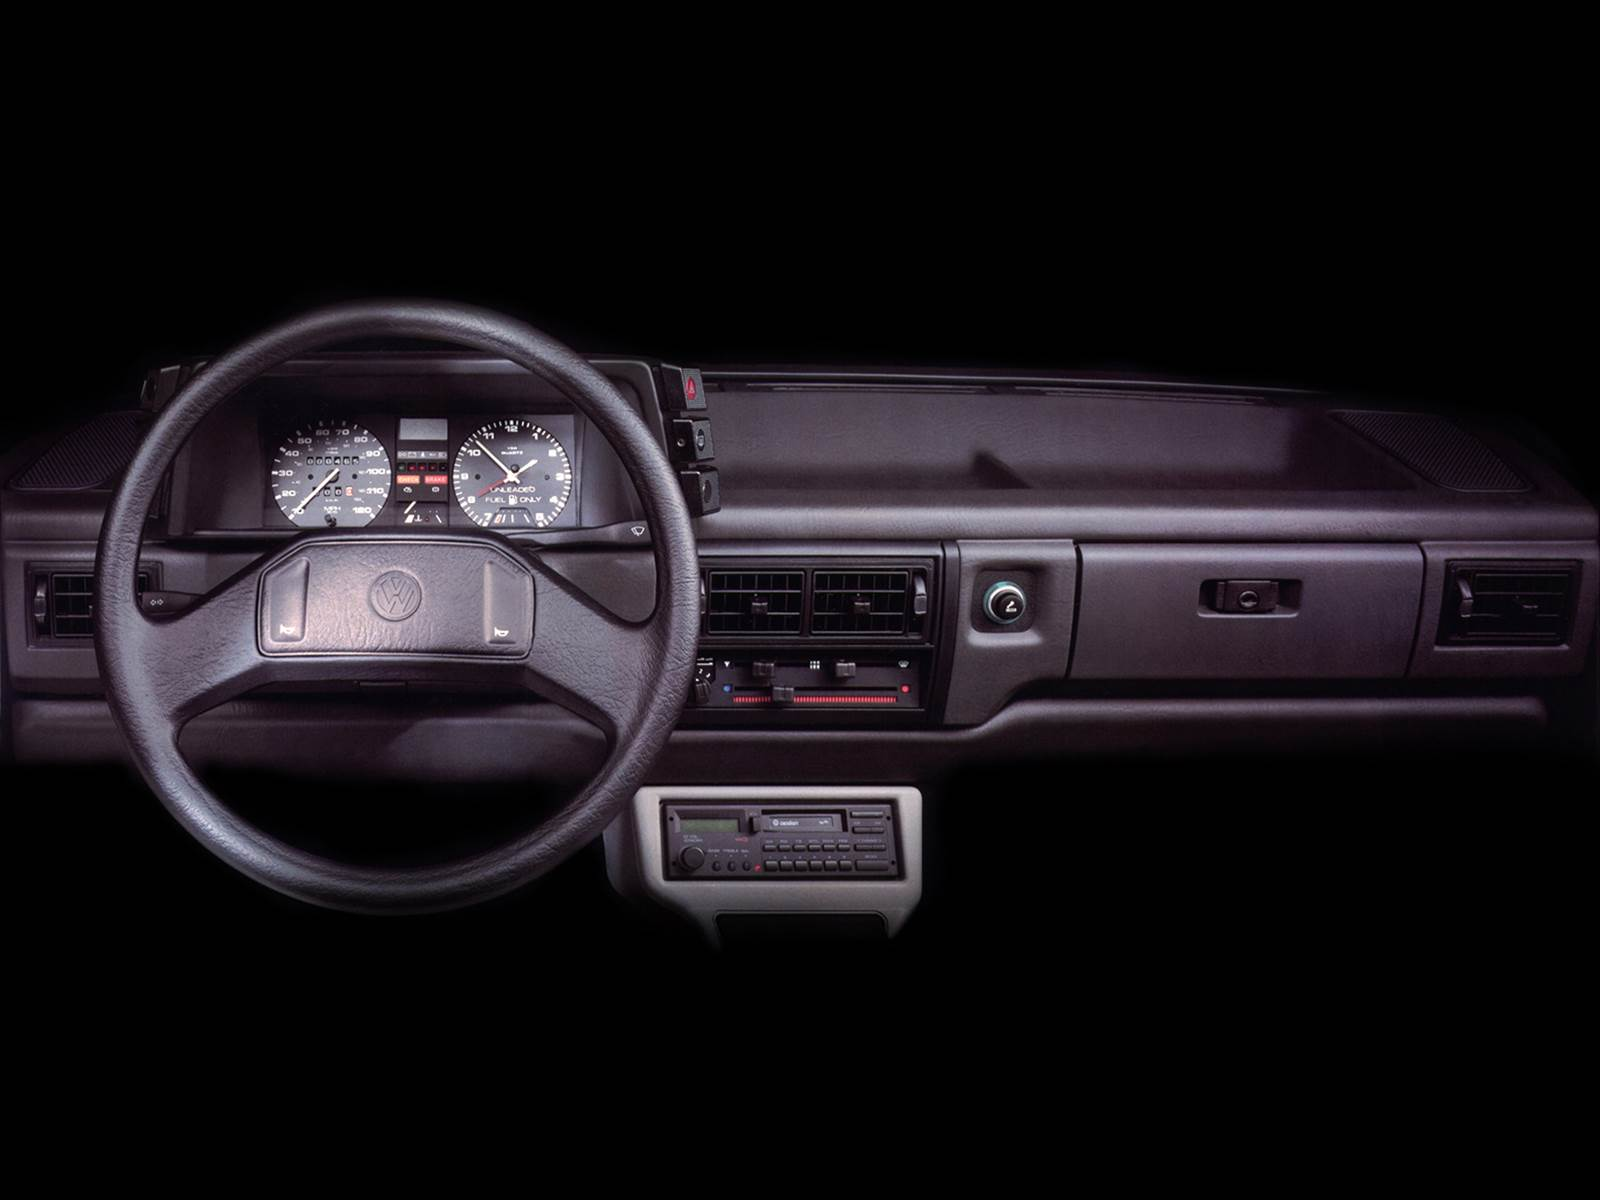 VW Voyage Fox 1987 - interior